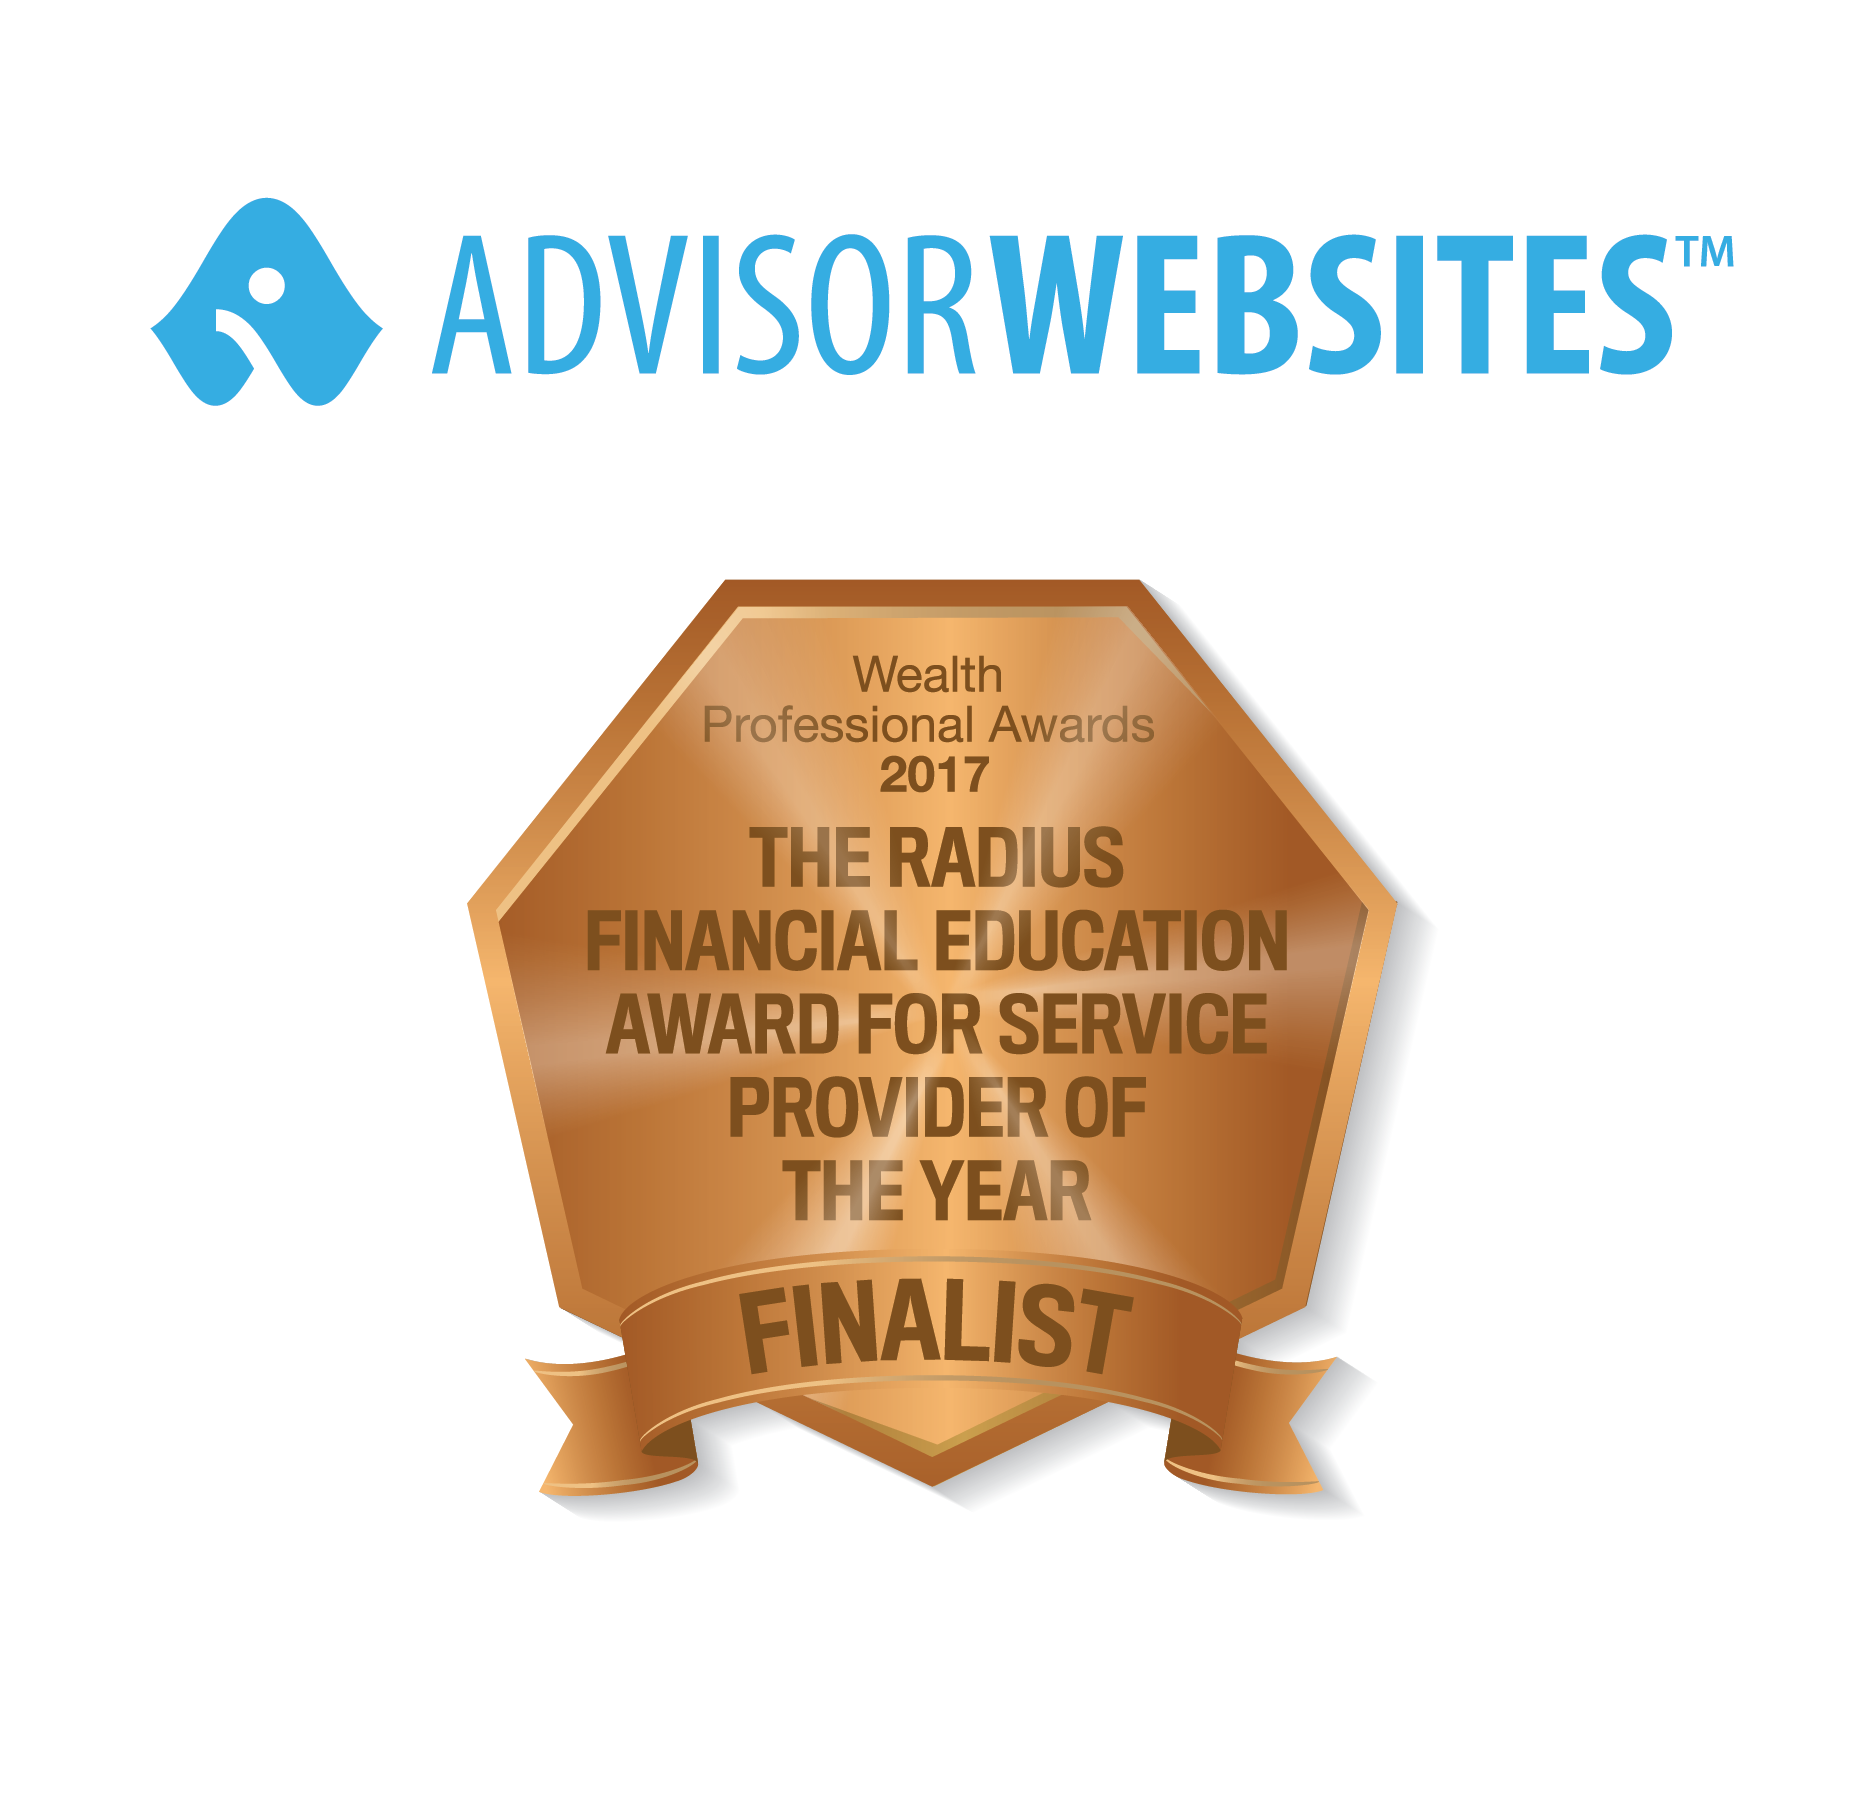 WPA17 Finalist Badges_THE RADIUS FINANCIAL EDUCATION AWARD FOR SERVICE PROVIDER OF THE YEAR_THE RADIUS FINANCIAL EDUCATION AWARD FOR SERVICE PROVIDER OF THE YEAR.png